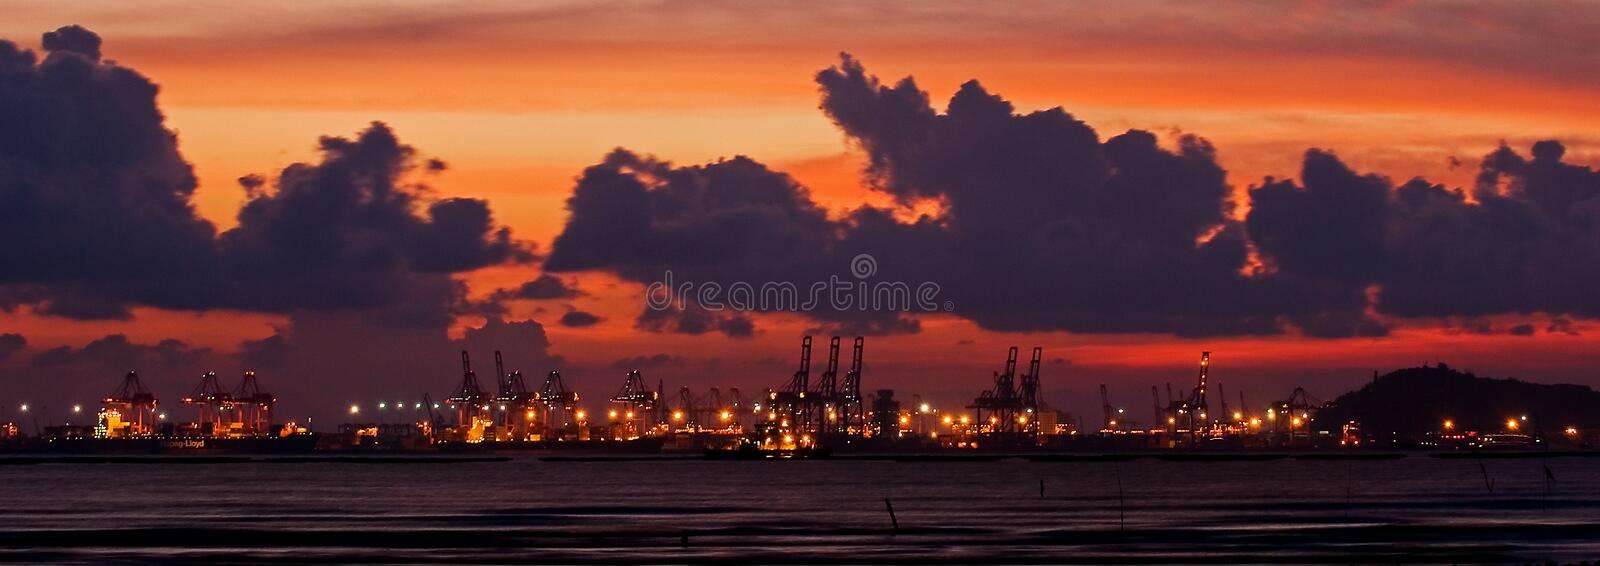 Por do sol na porta de Containrt fotografia de stock royalty free